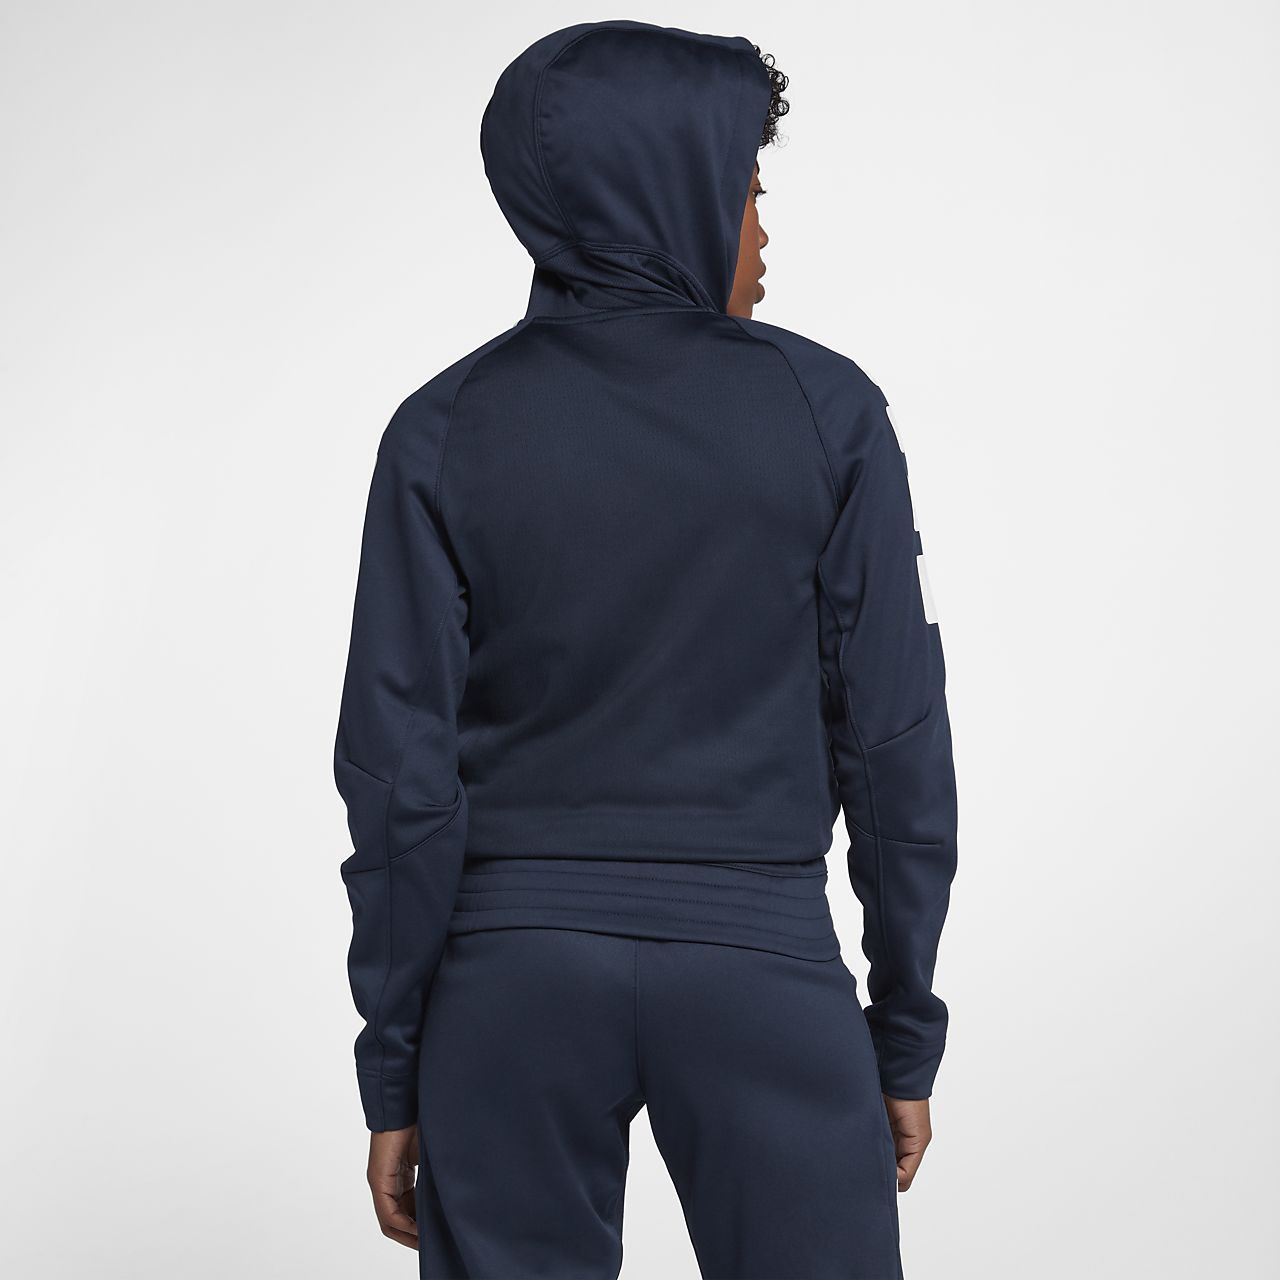 new style 3fd2d 50f3e ... Nike Therma Elite Women s Basketball Hoodie